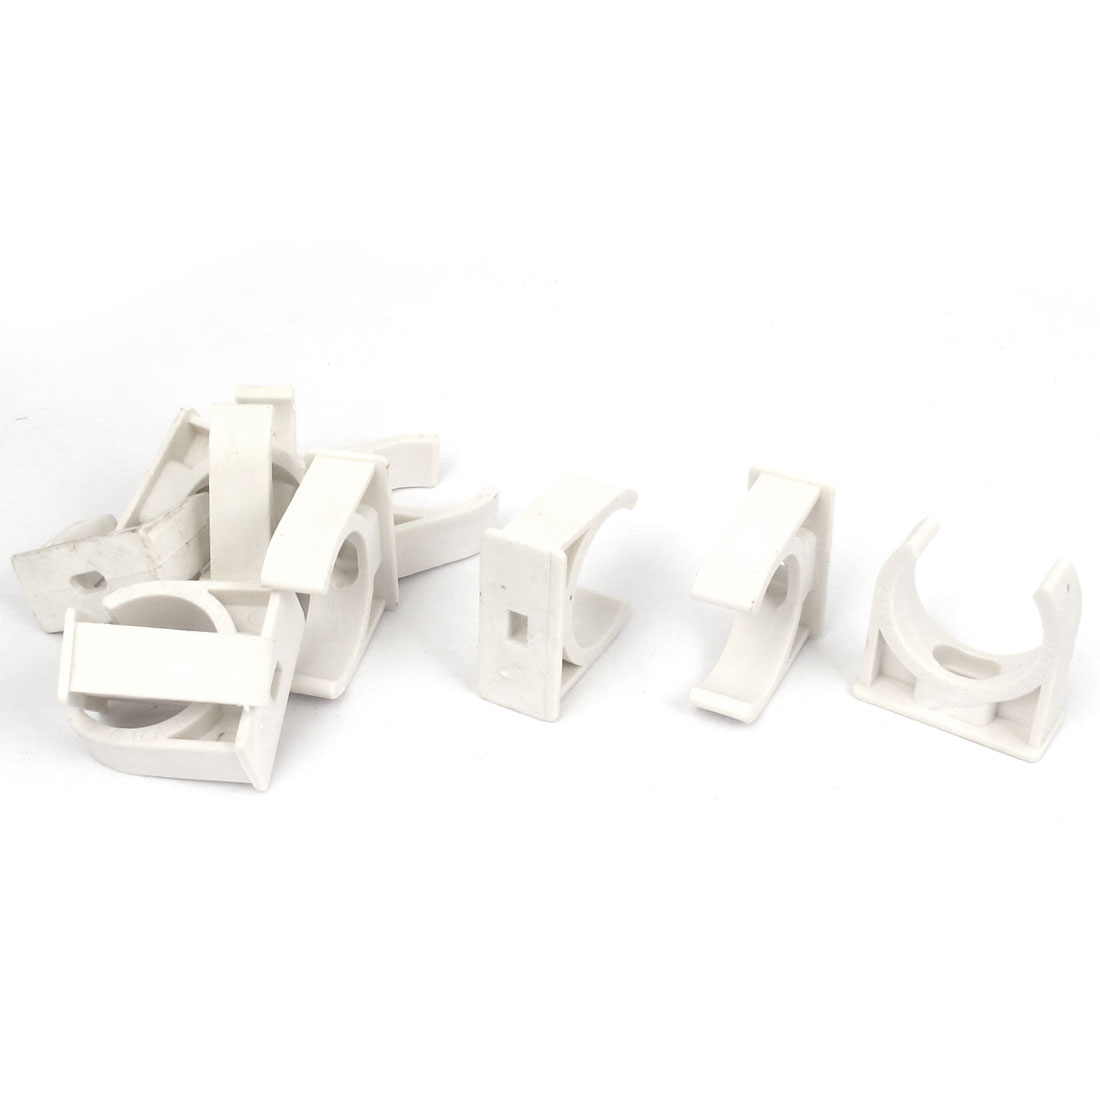 10pcs 32mm Dia White Water Supply Pipe Tubing Hose Clamps Clips Fittings